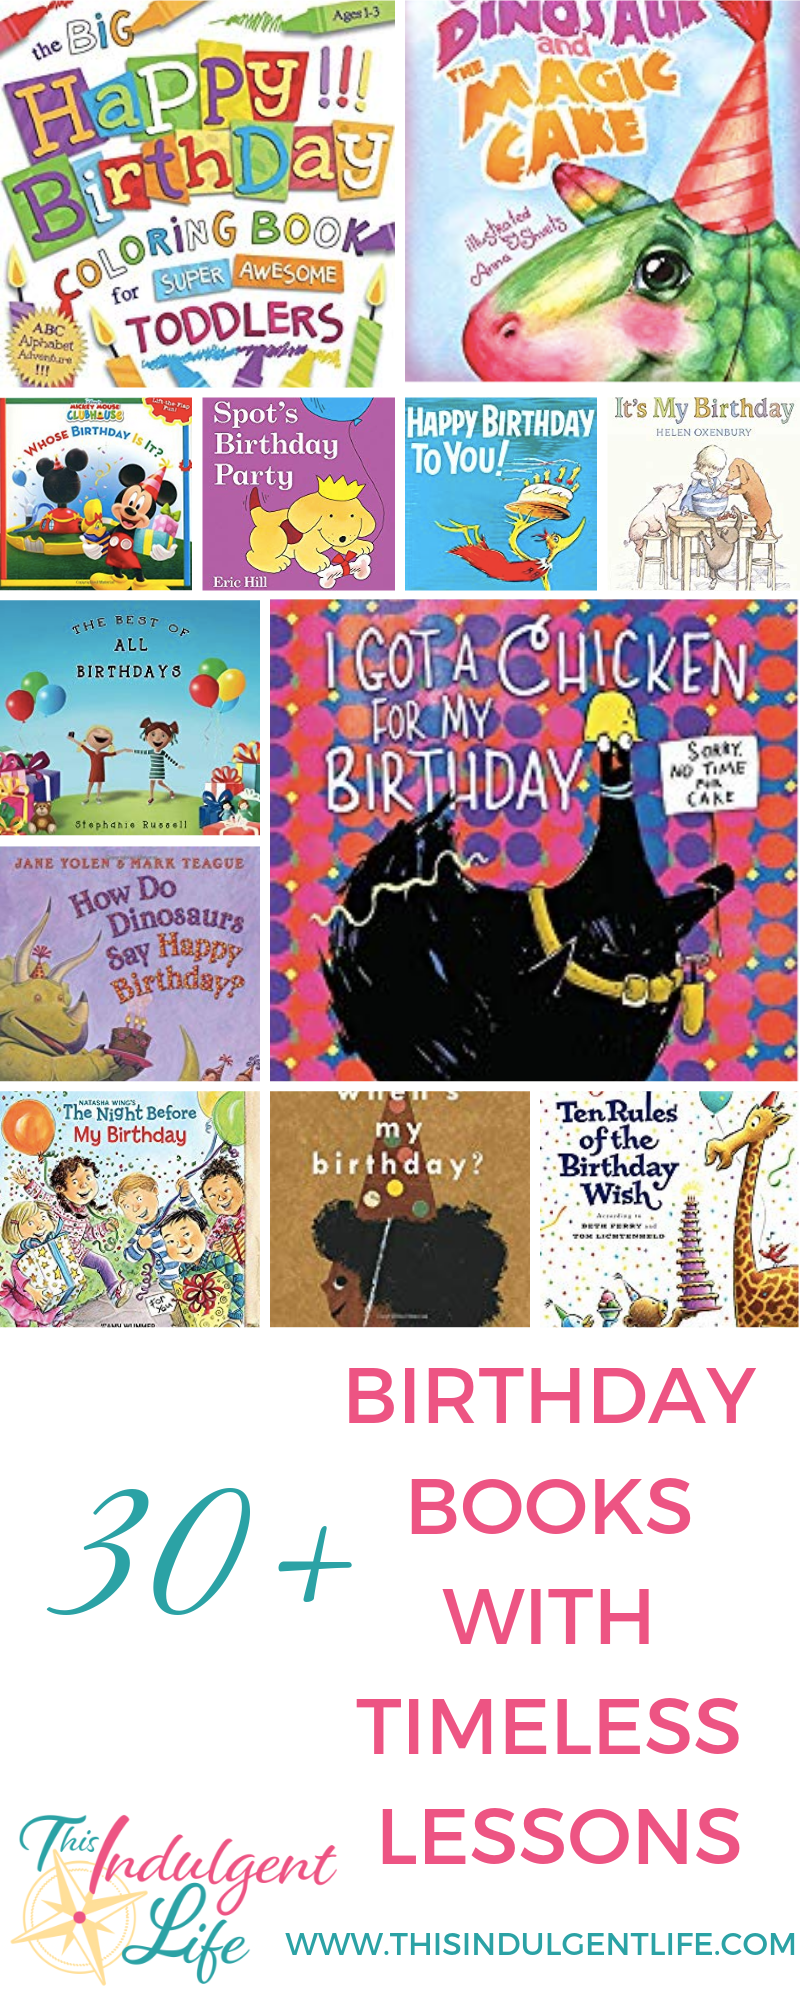 30+ Birthday Books With Timeless Lessons | This Indulgent Life | Birthdays are a time of celebration, but it can also be a time filled with disappointment or even confusion about what's appropriate. Here are over 30 books to help your child celebrate their birthday where many of them teach important life lessons such as patience, overcoming setbacks, and working together! | #childdevelopment #childbirthdaybooks #birthdaybooks #childbirthdaygift #partygift #developingpatienceinchildren #developingcharacter #birthdaytraditions #moralofthestory #lifelessons #childrensbooks #picturebooks #booksfortoddlers